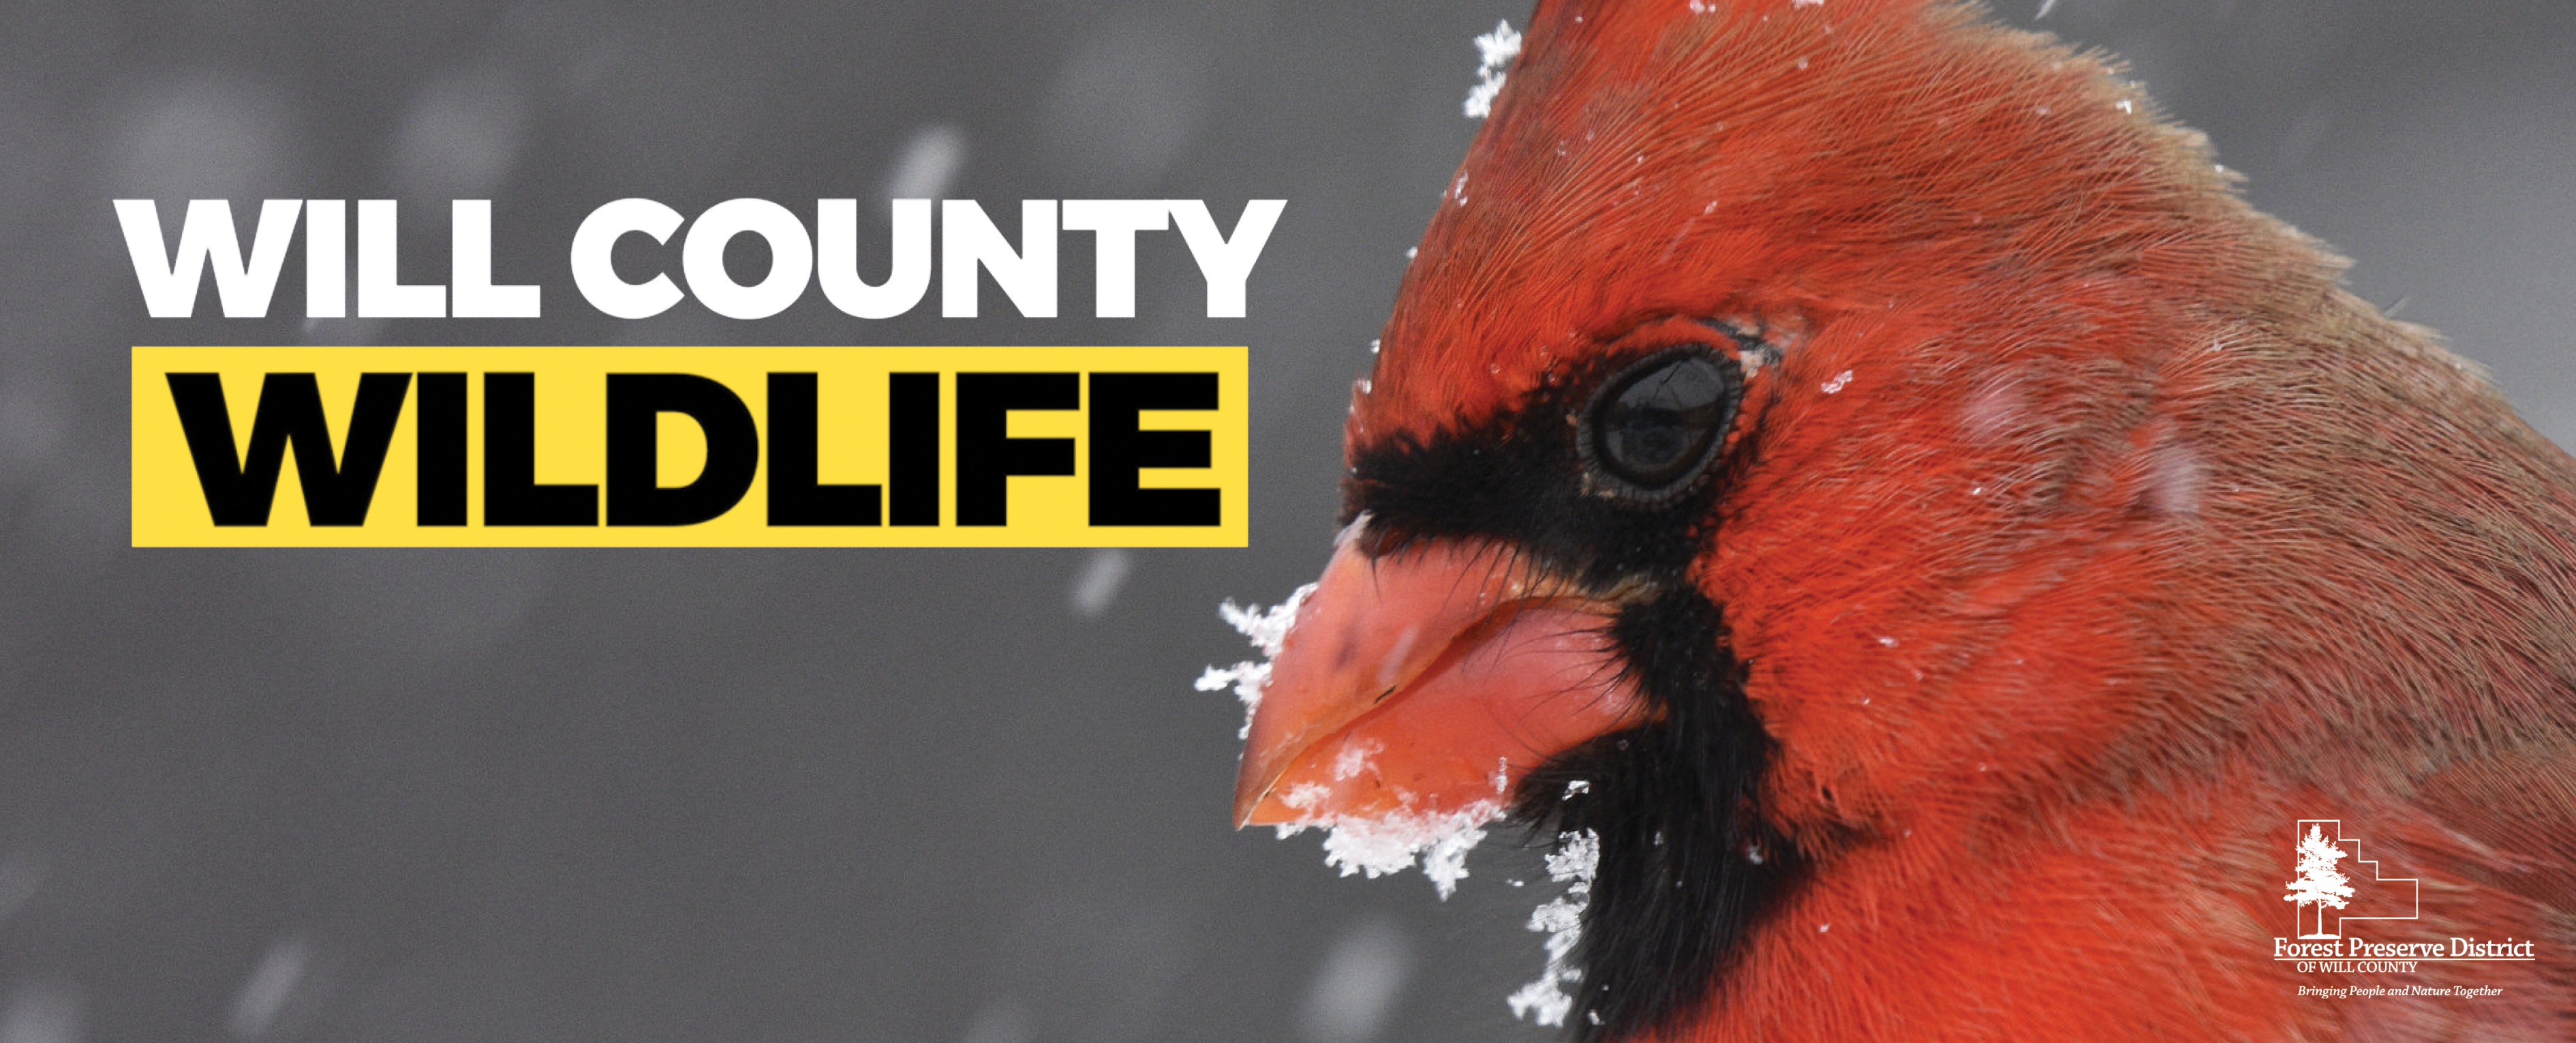 Photo for: Join Our Will County Wildlife Facebook Group